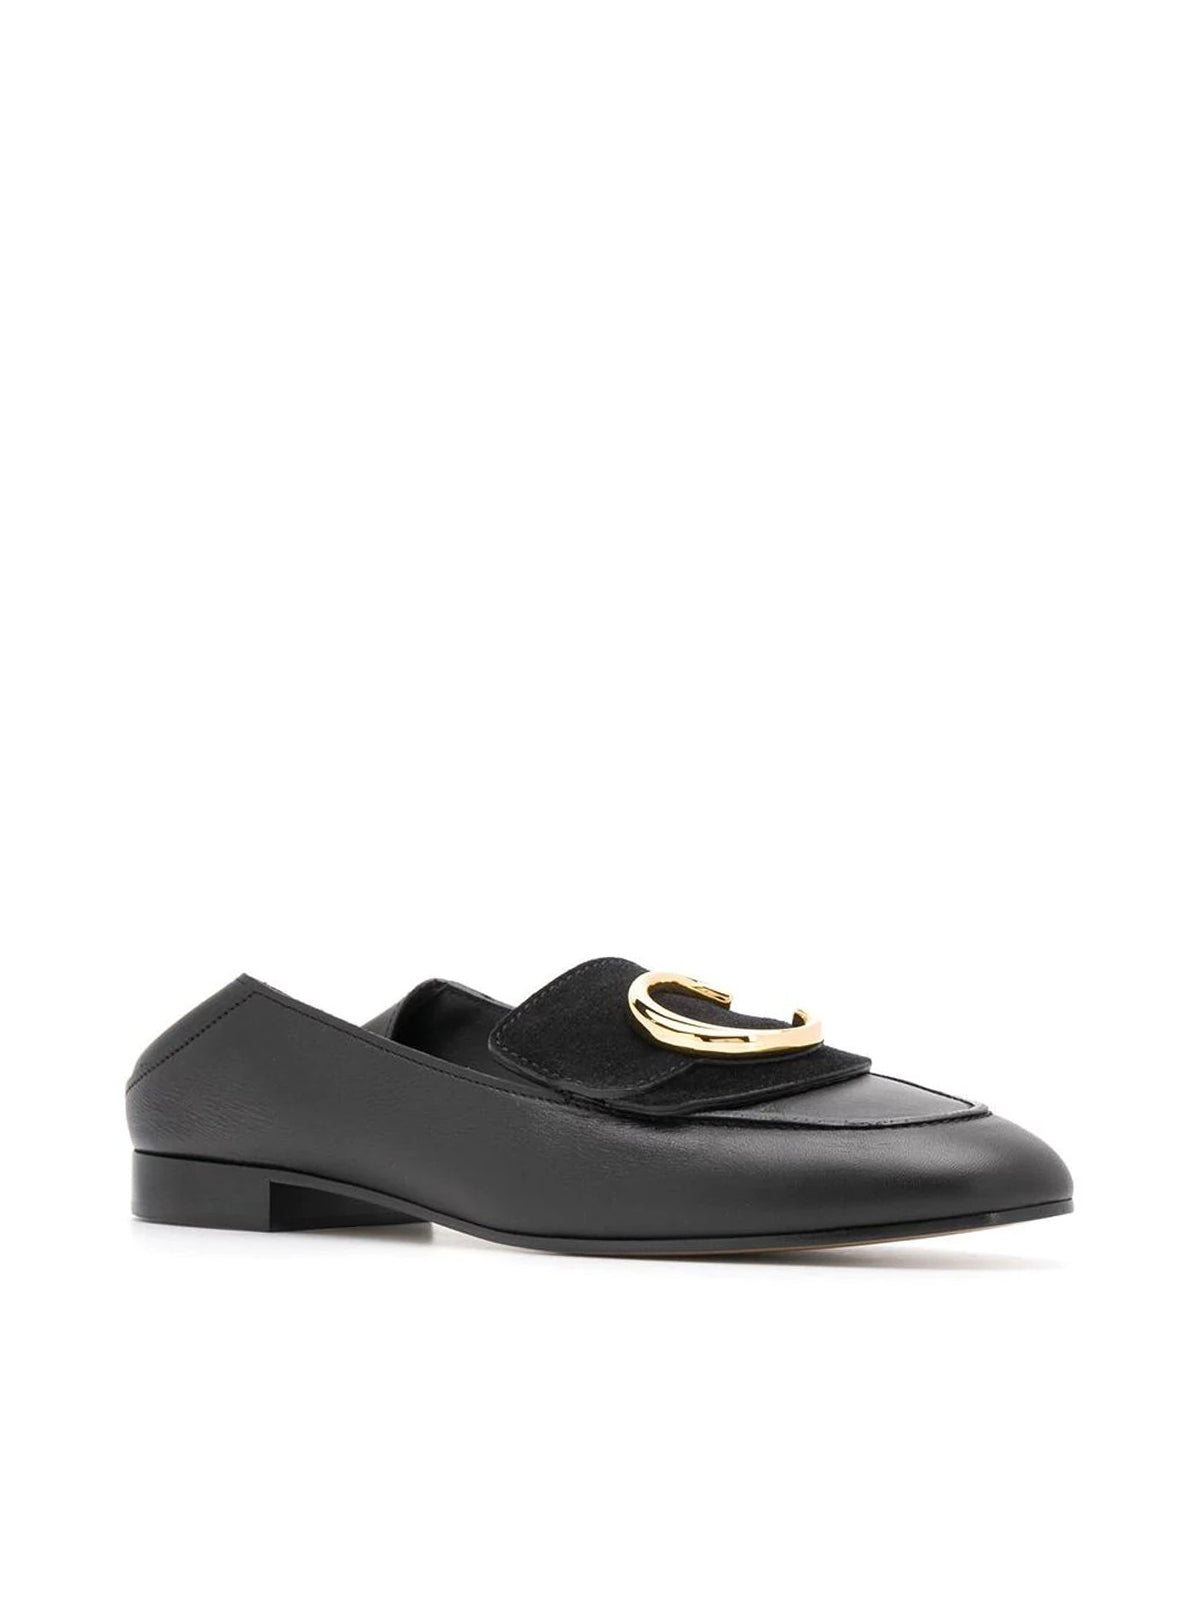 LOAFER WITH BRASS GOLD LOGO